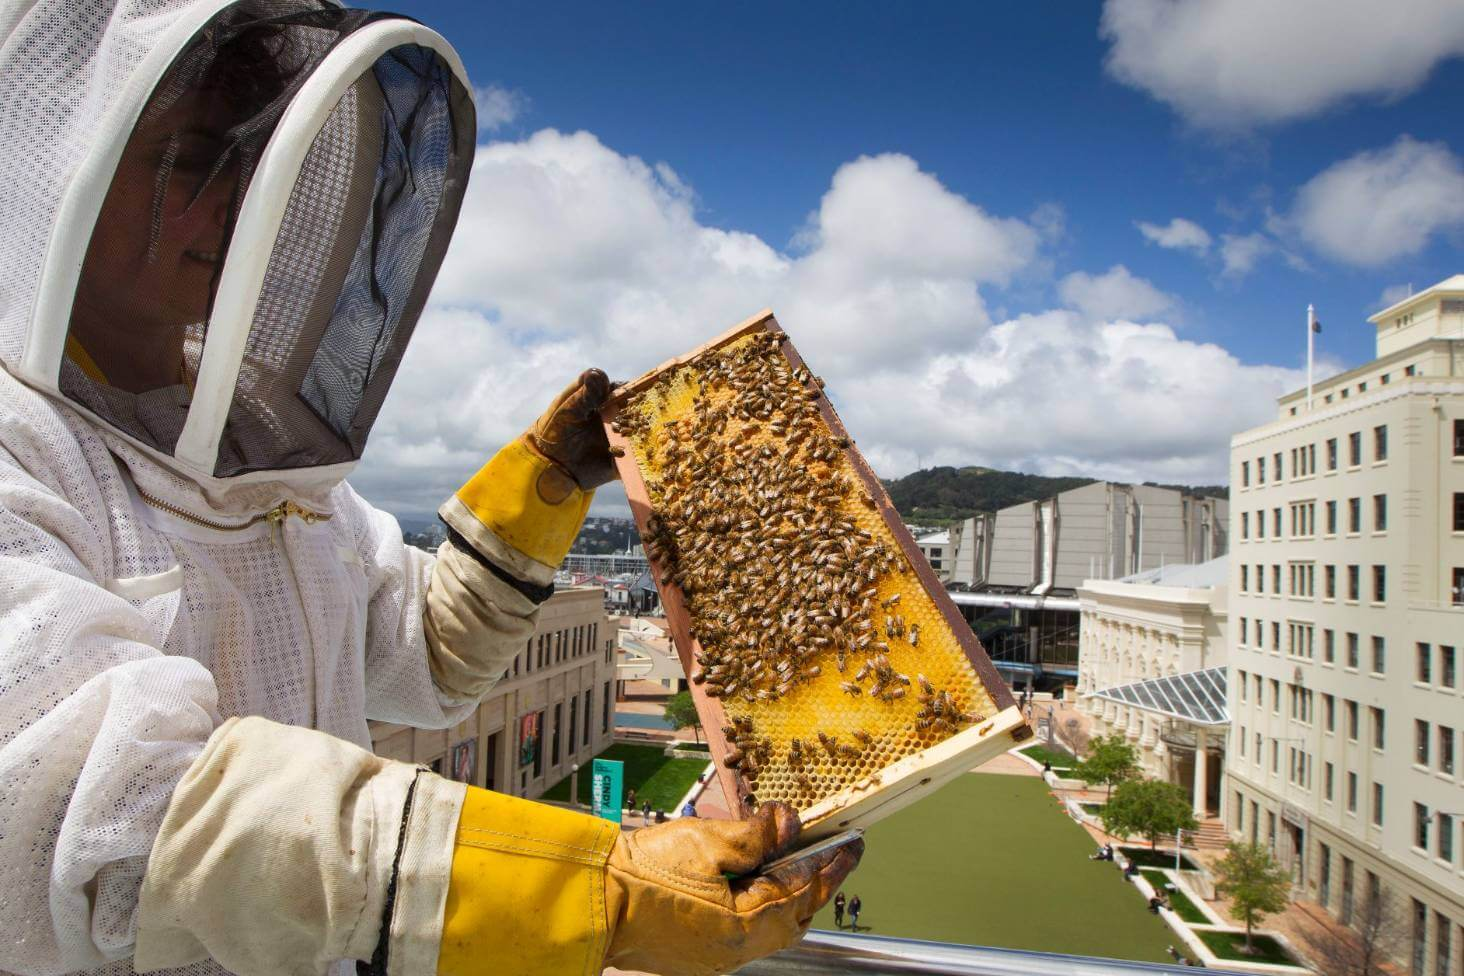 Video: Good intentions aren't enough — Attempts to protect wild bees has gone awry and an influx of imported honeybees are doing more harm than good to native populations